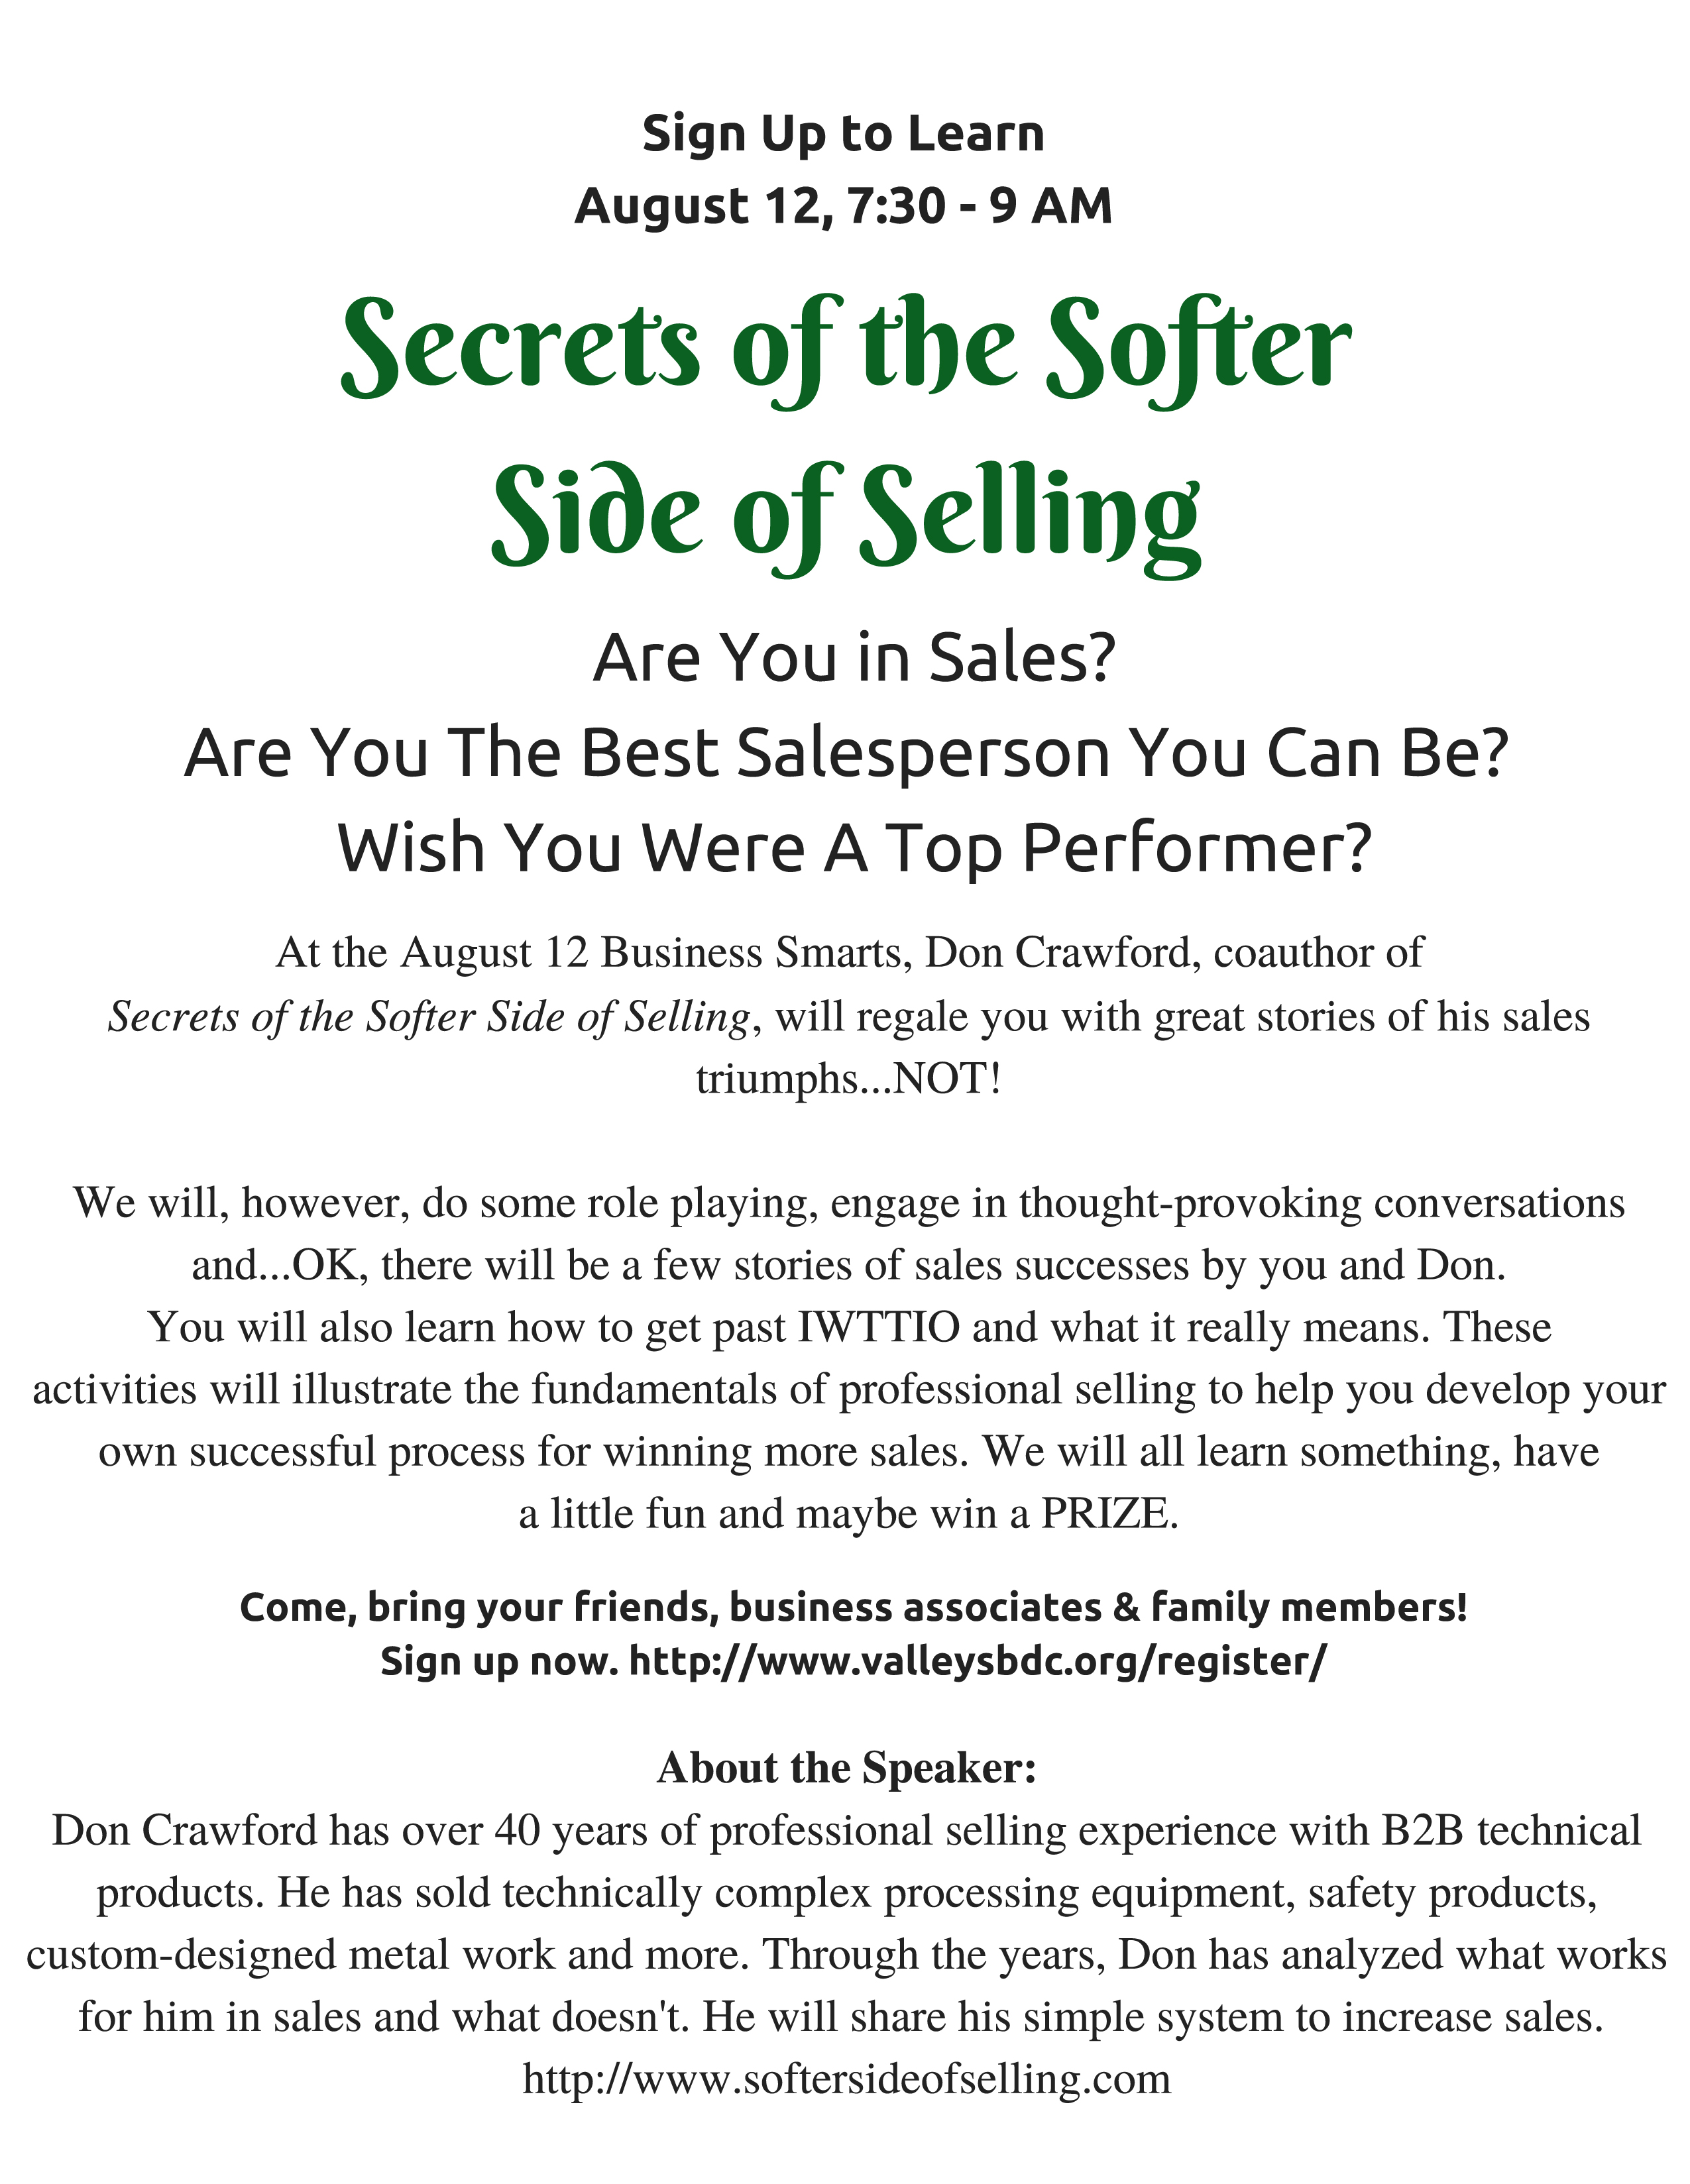 Secrets of the SofterSide of Selling